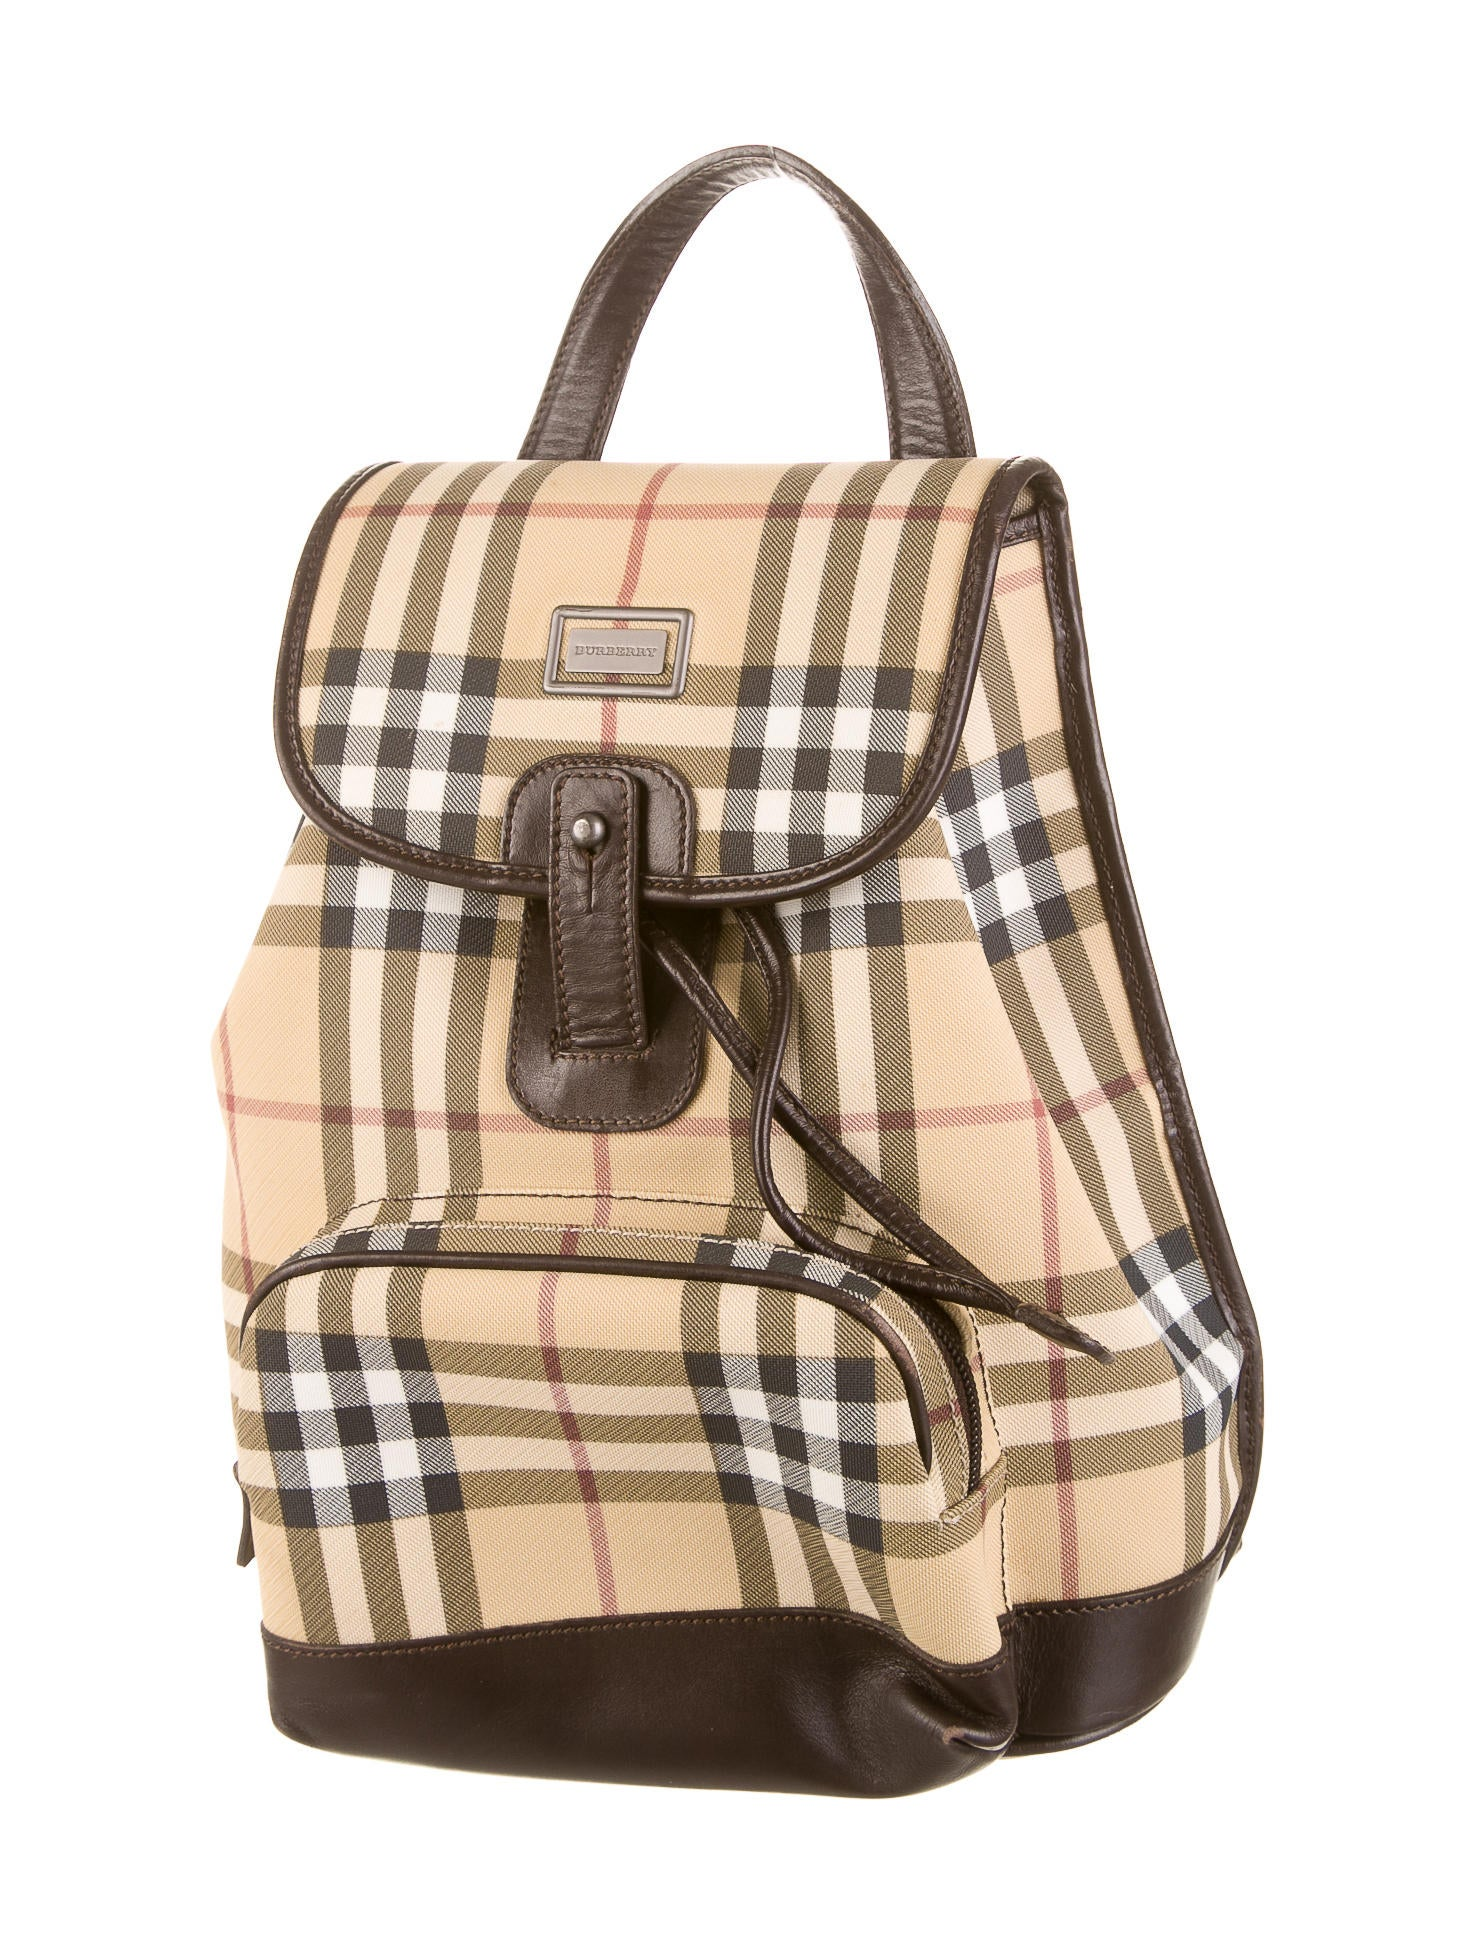 Burberry Purse Backpack